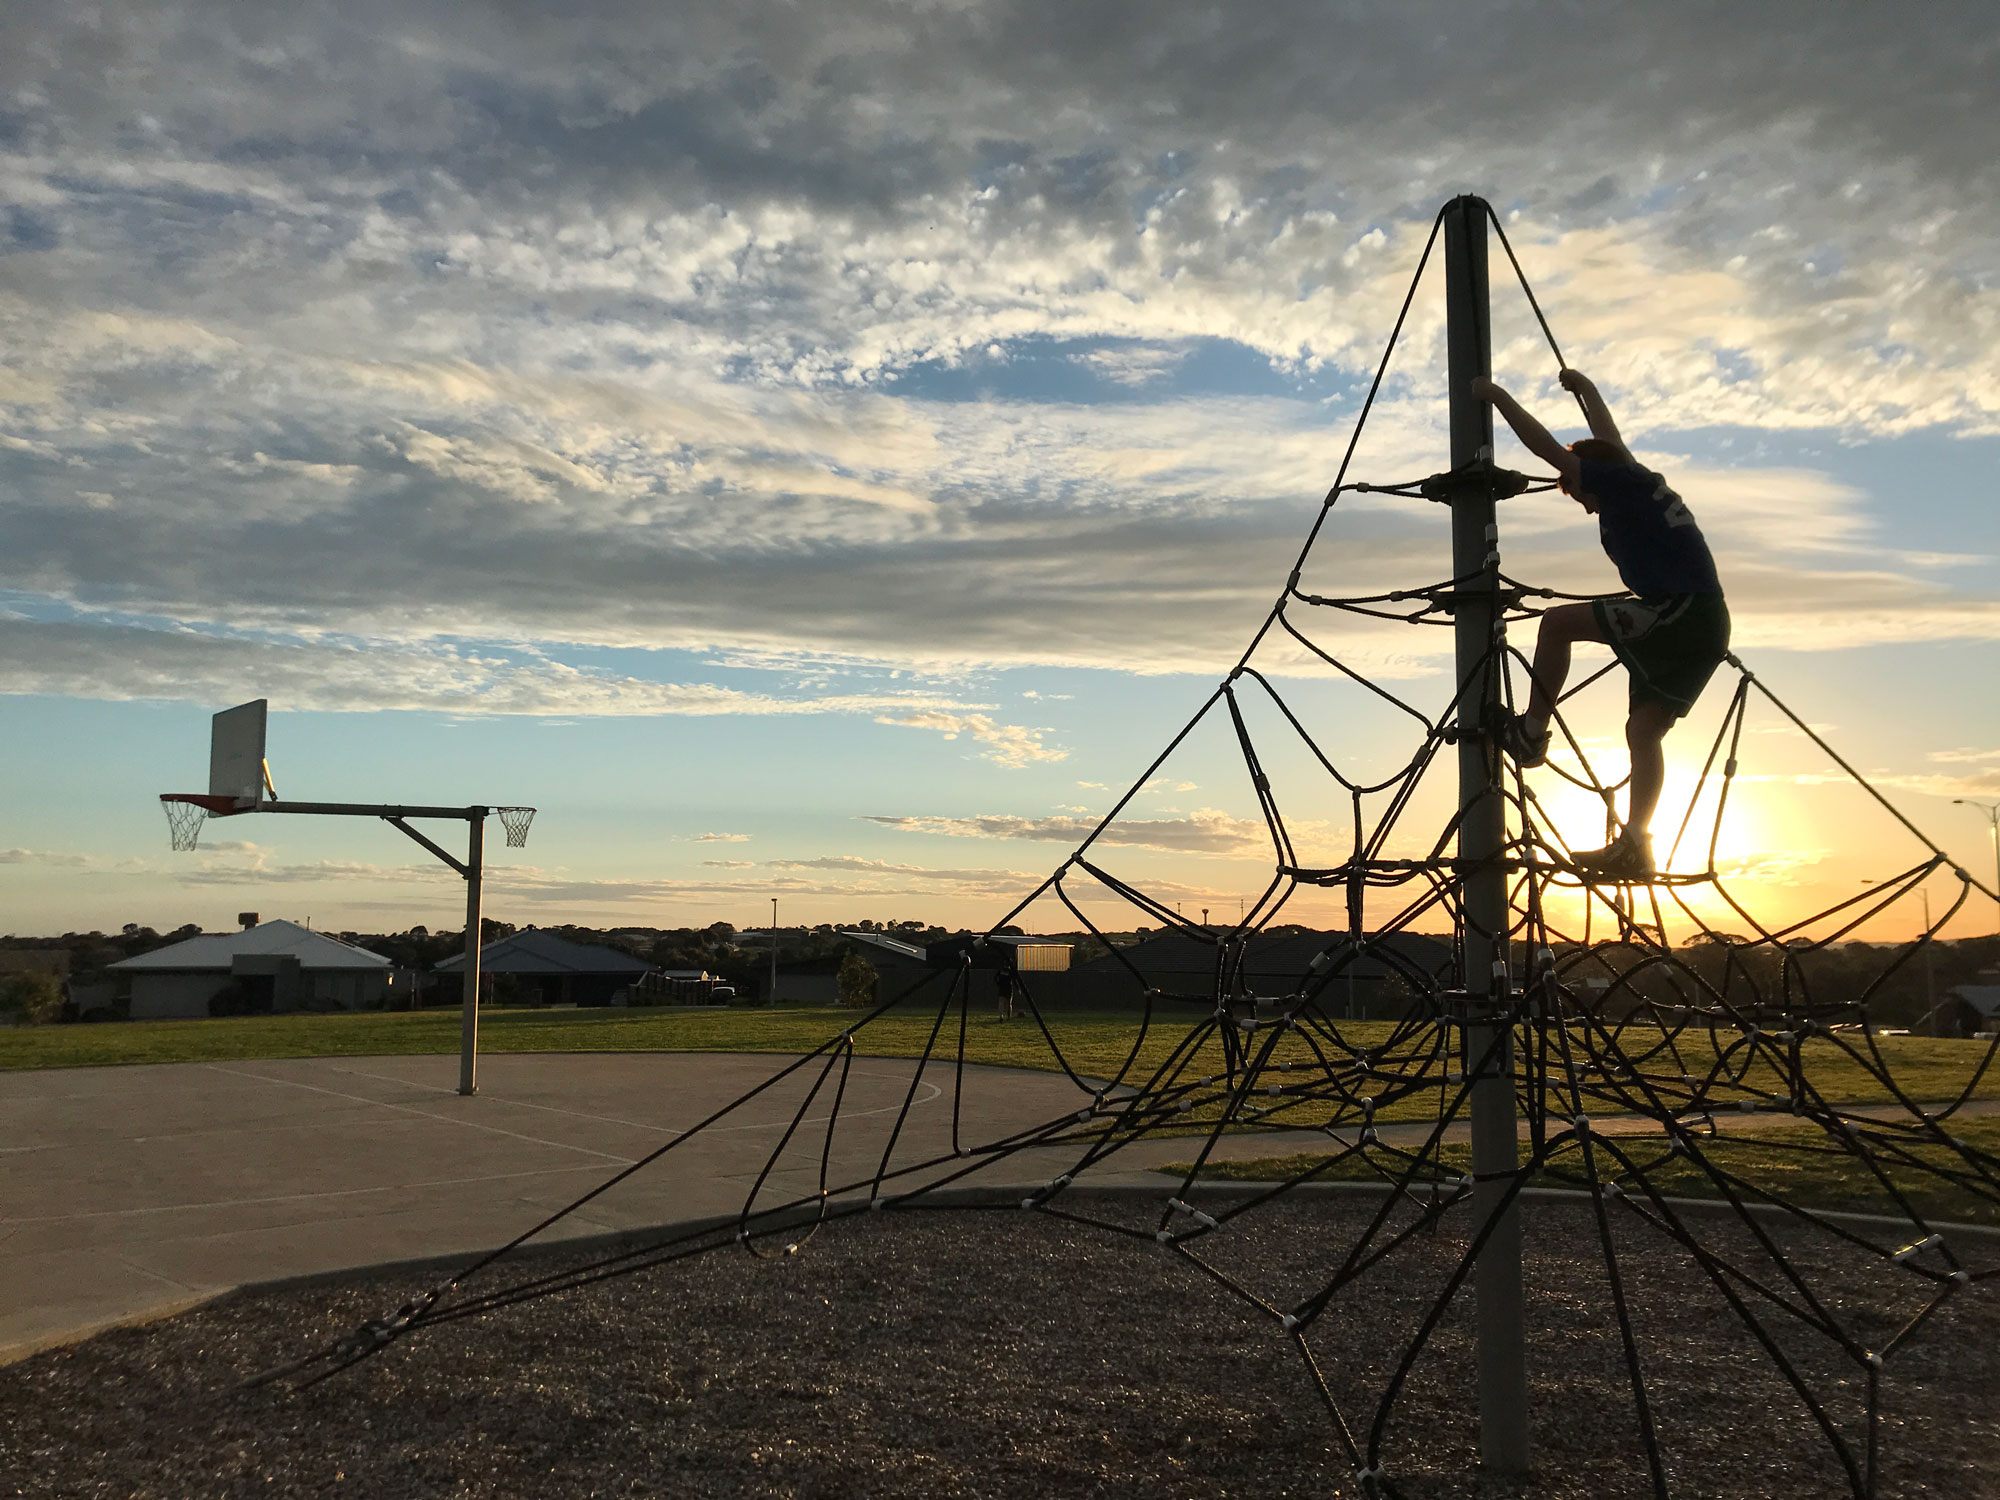 wollaston-way-warrnambool-land-for-sale-playground